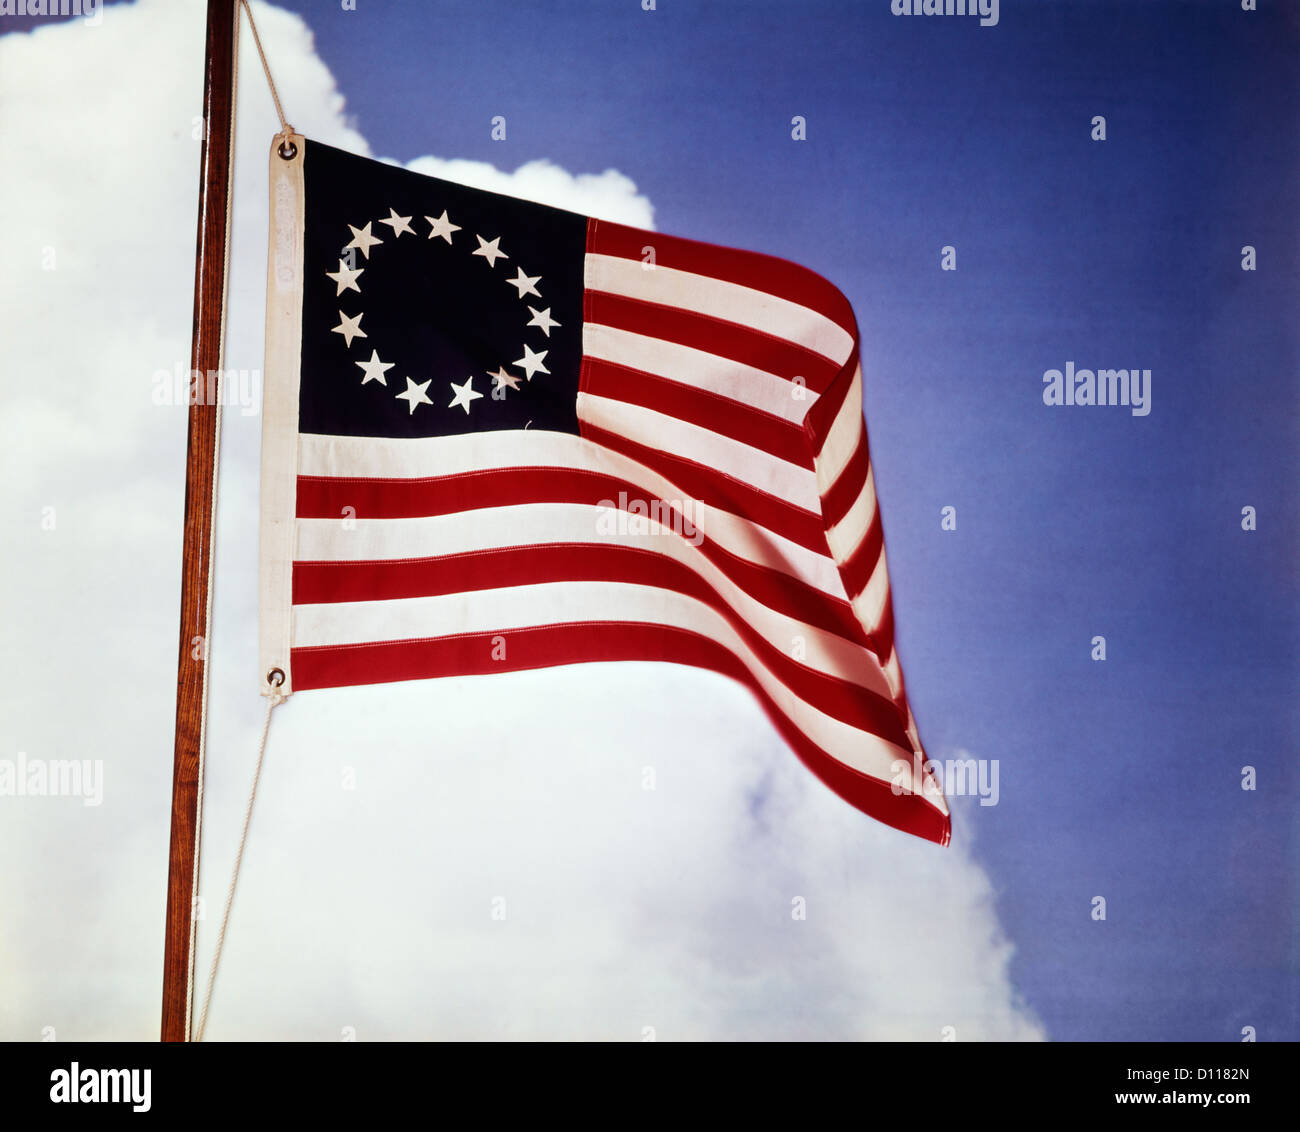 Old american flag 13 stars stock photos old american flag 13 stars 1700s 1770s american flag with 13 stars representing the colonies colonial 1776 revolution stock image publicscrutiny Choice Image